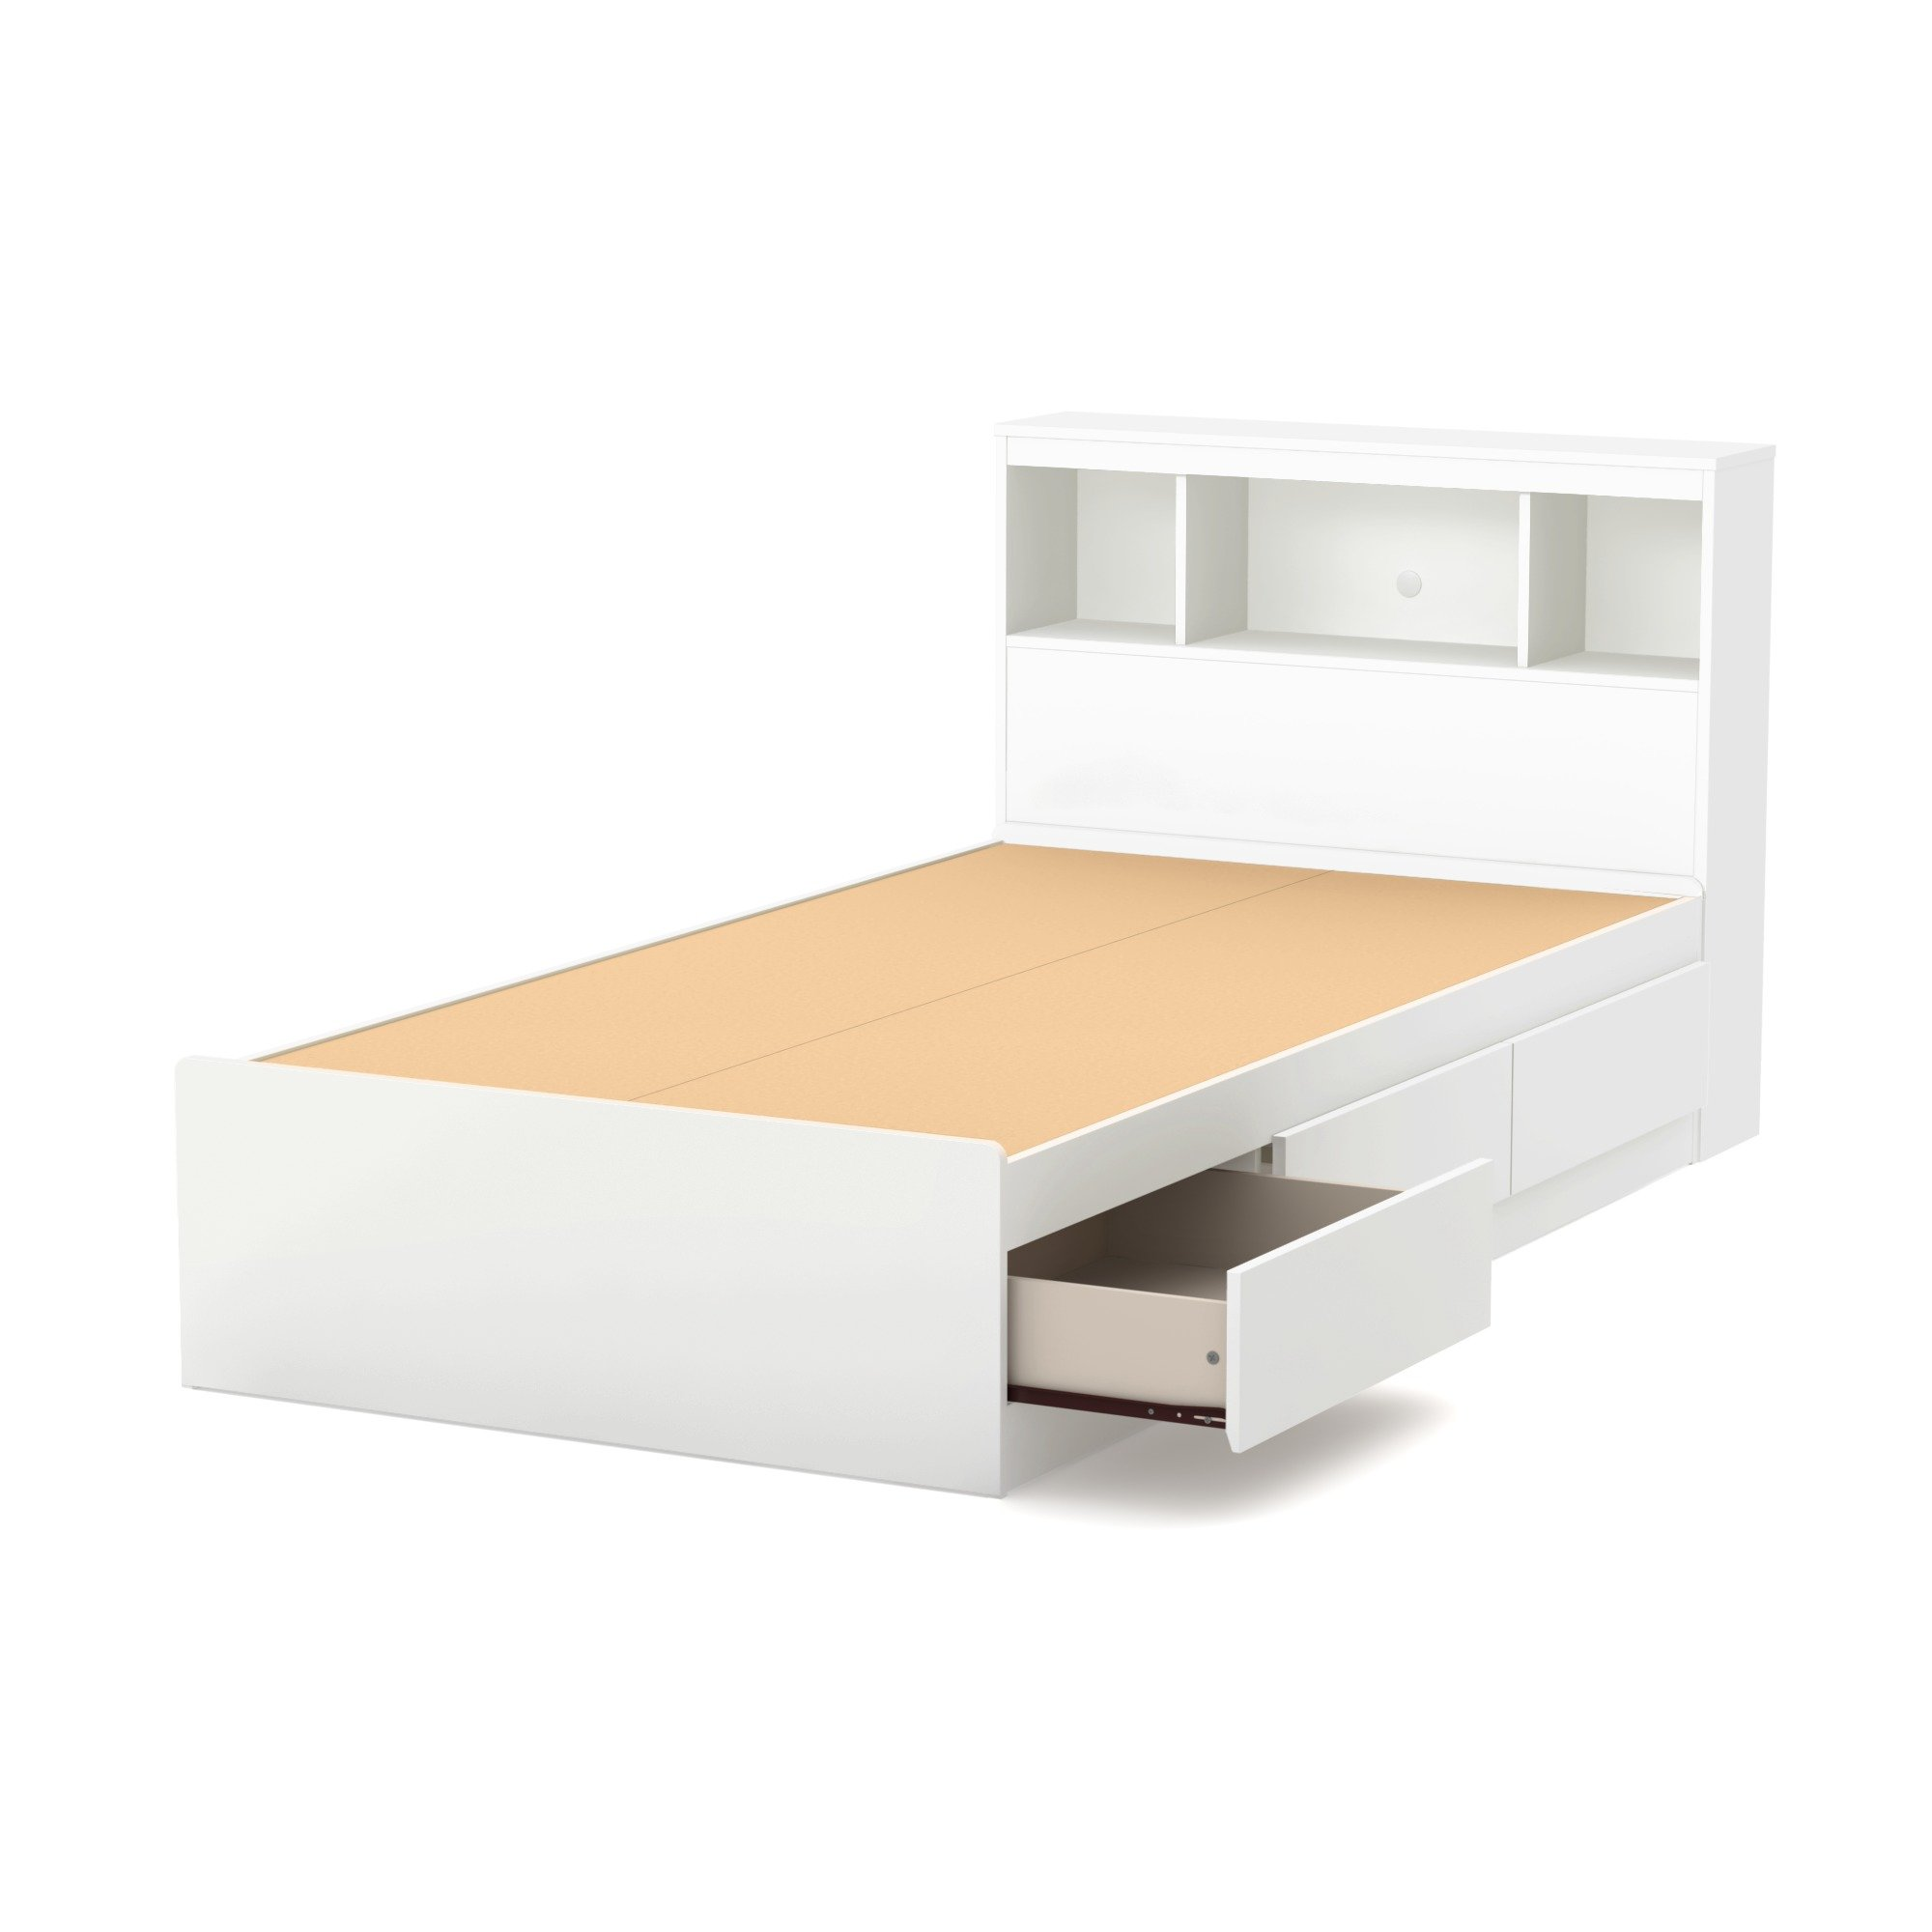 South Shore Reevo Twin Mates Bed With Bookcase Headboard (39''), Pure White